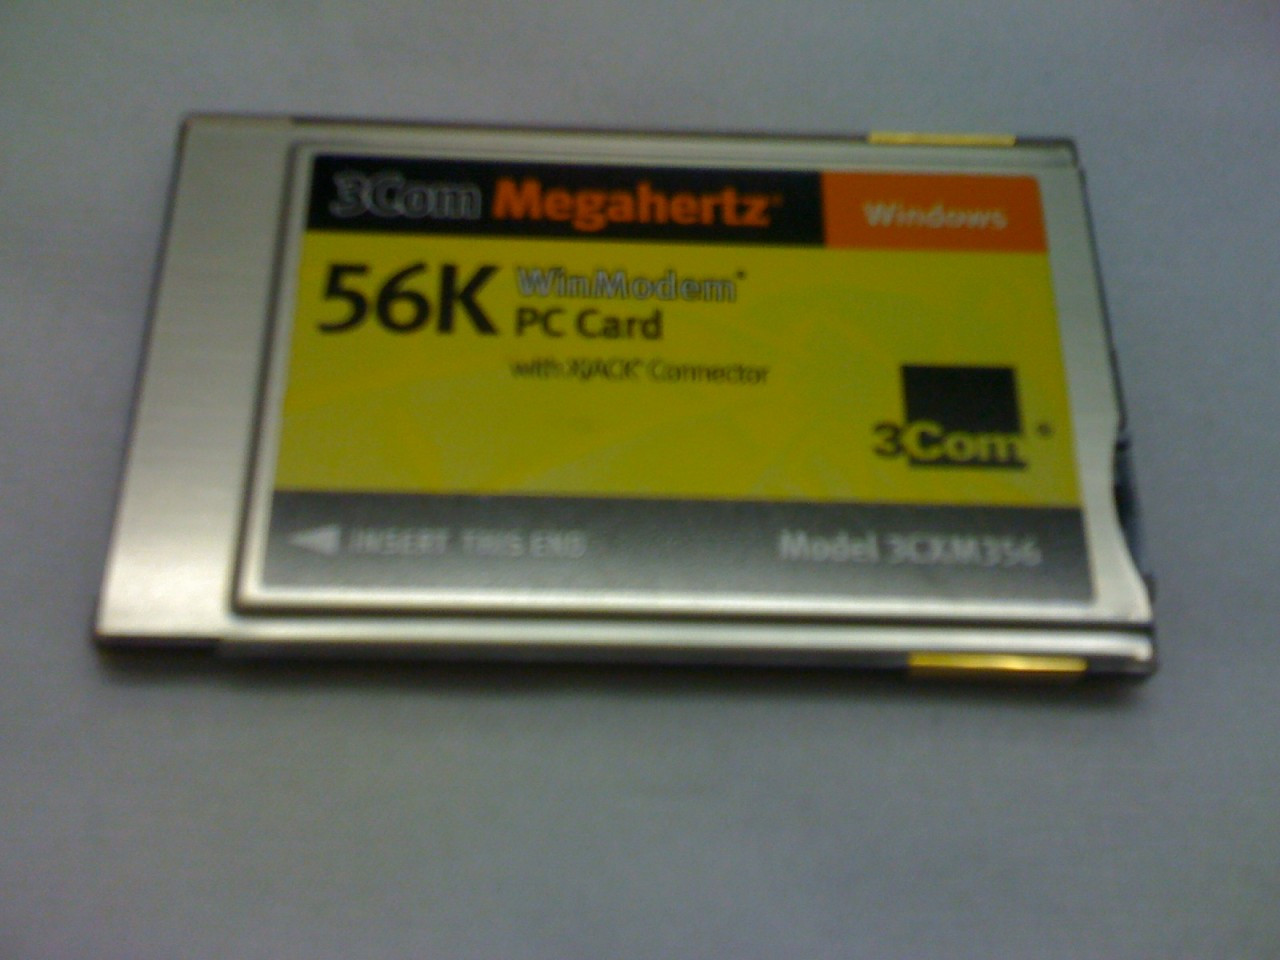 3Com Megahertz LAN+56K PC Card Drivers (2019)